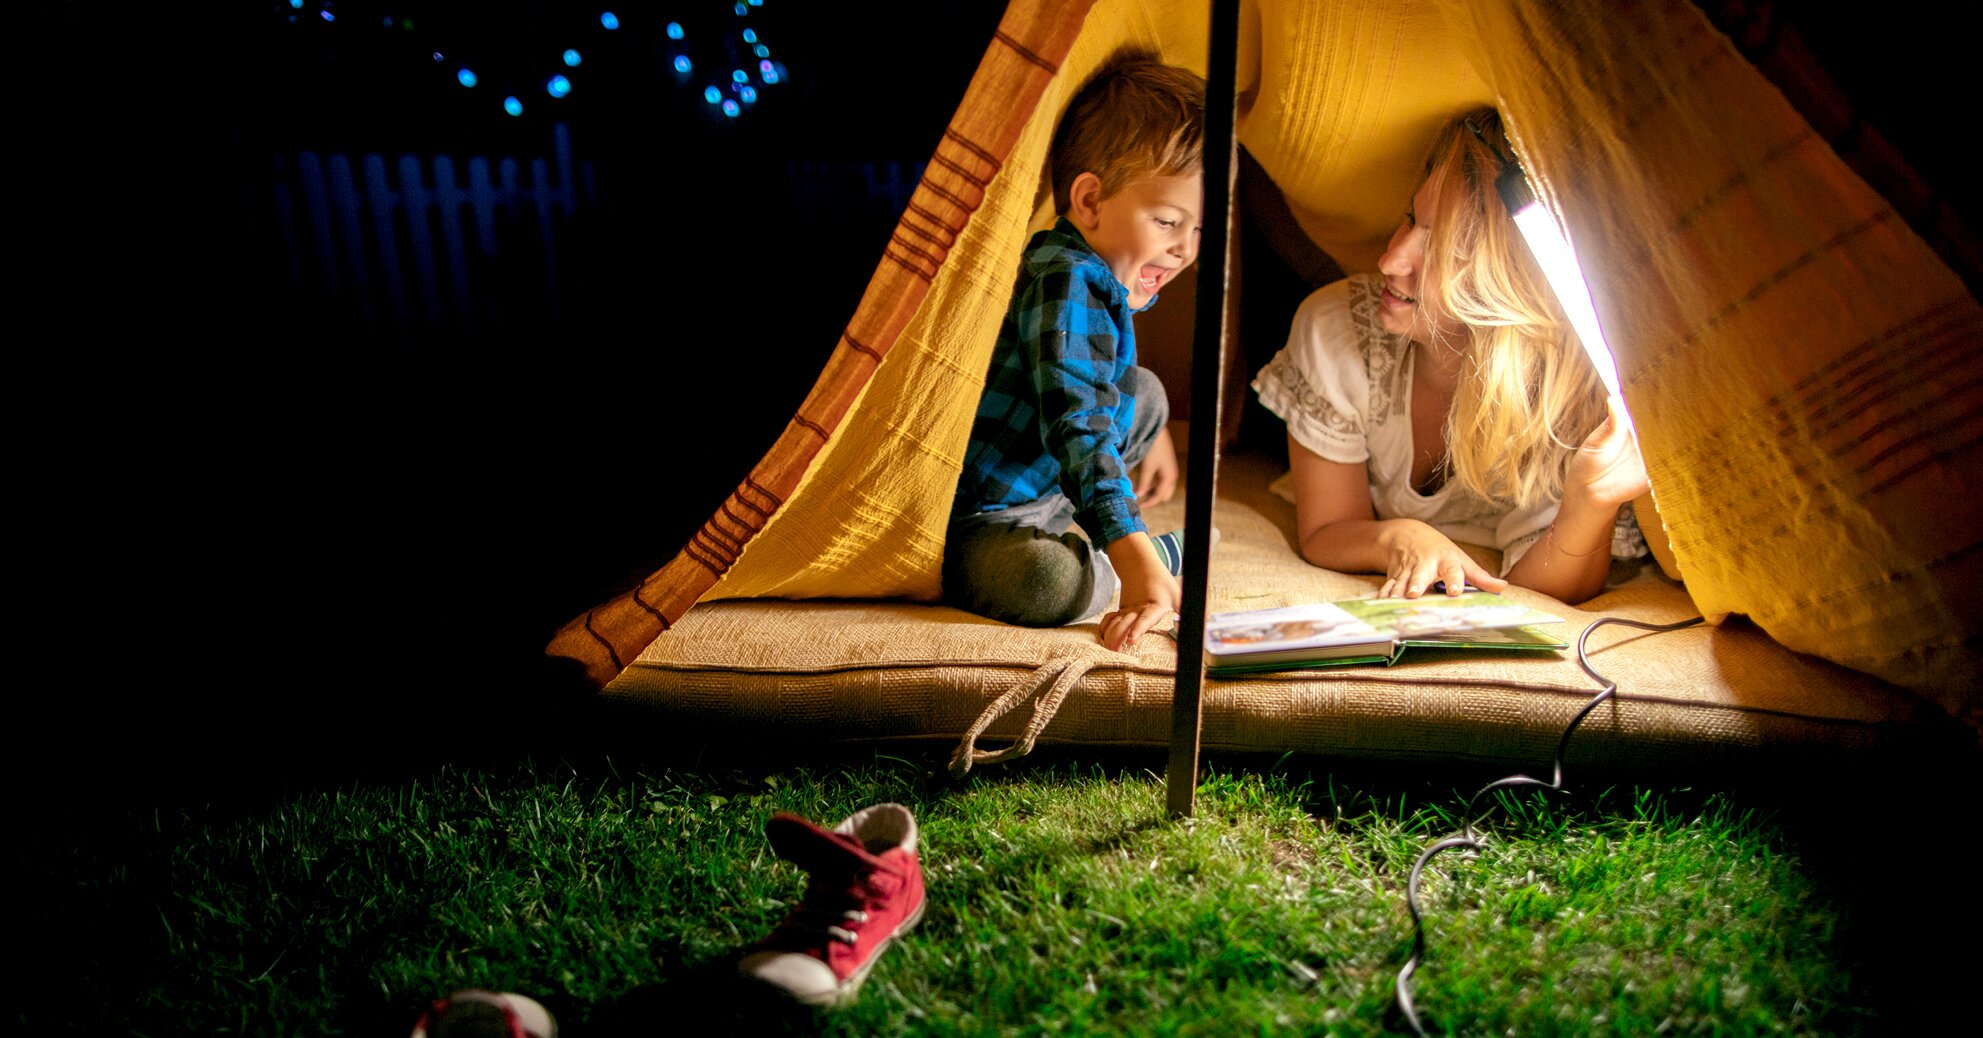 Trip Canceled? 6 Essentials to Grab for a Fun Backyard Campout Instead